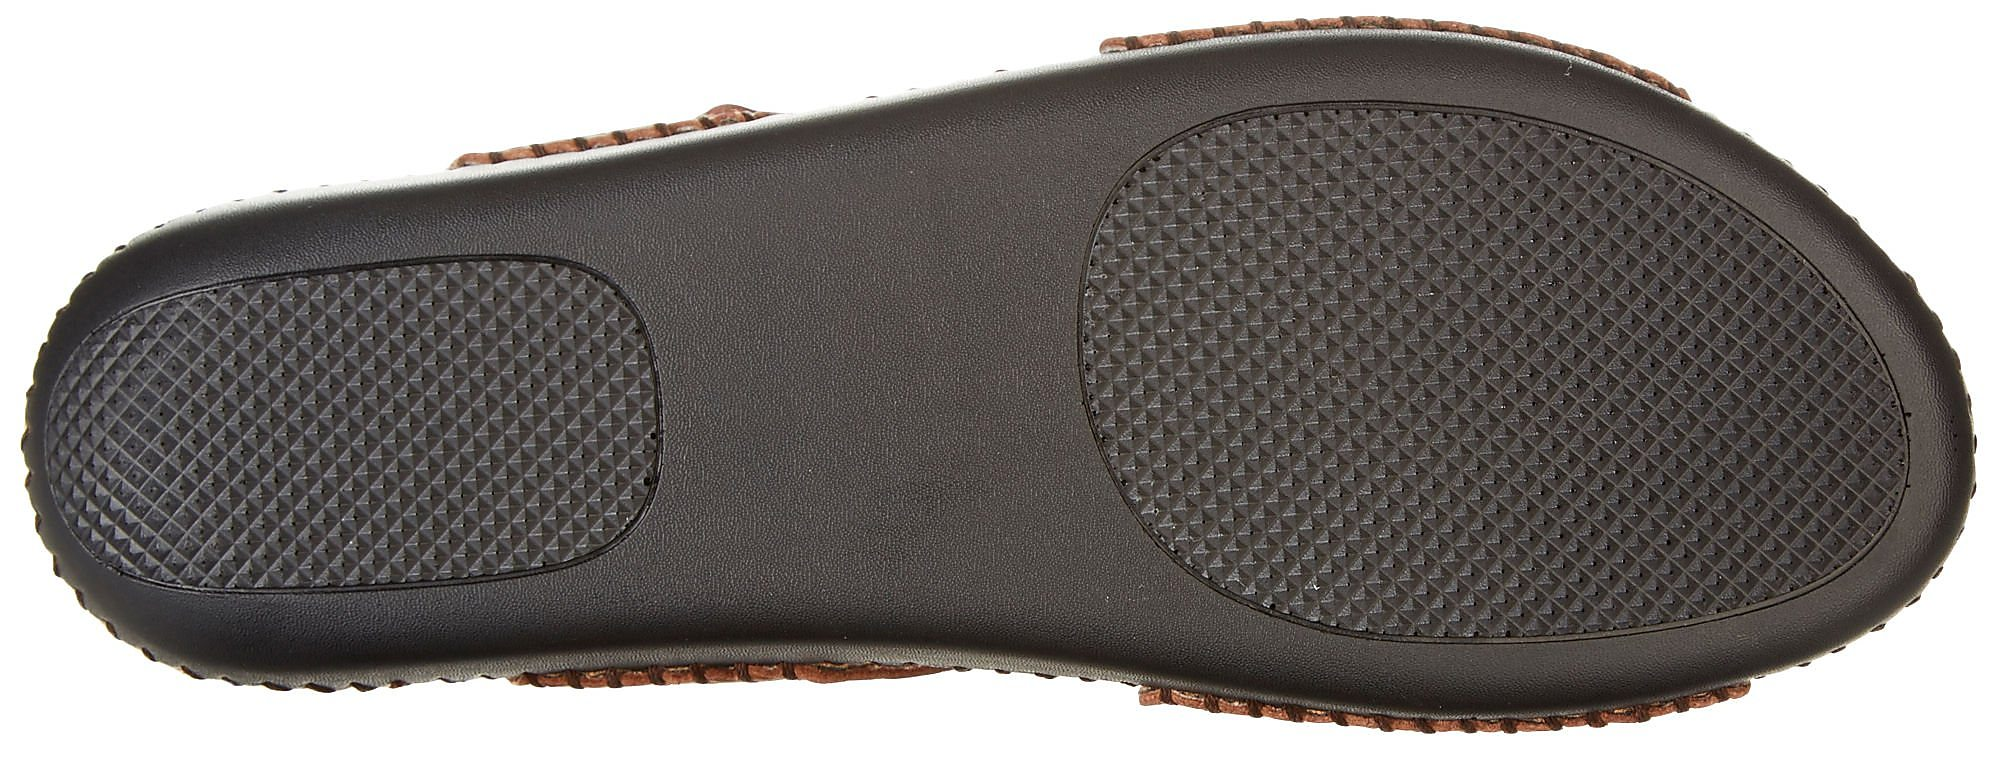 Naturalizer-Womens-Scout-II-Sandals thumbnail 19